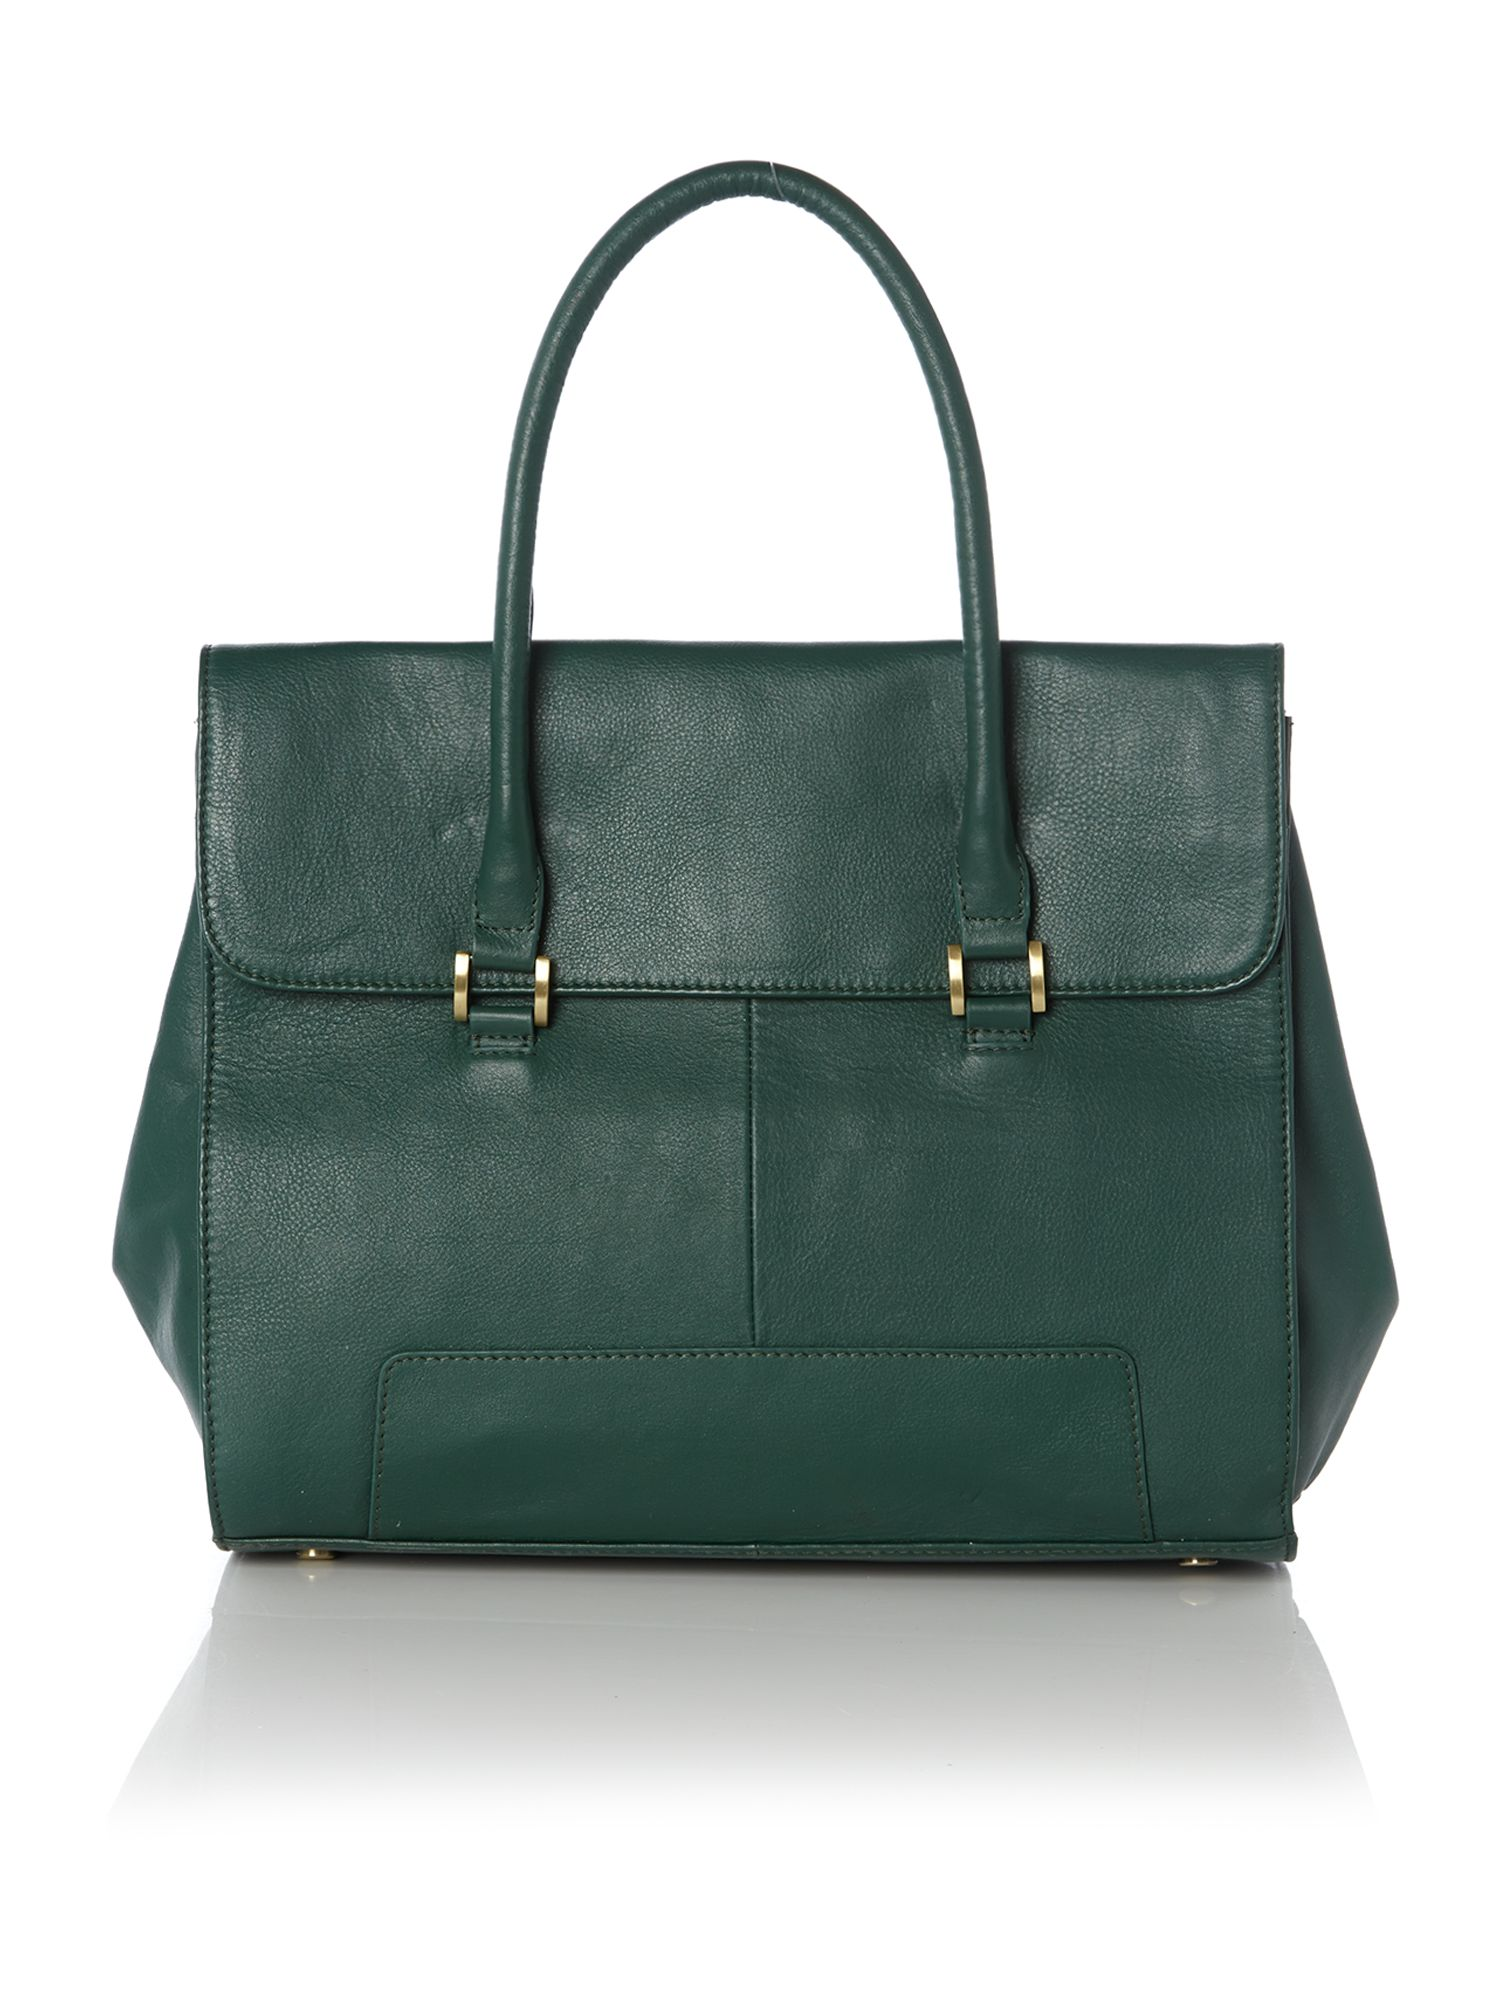 Winged work handbag